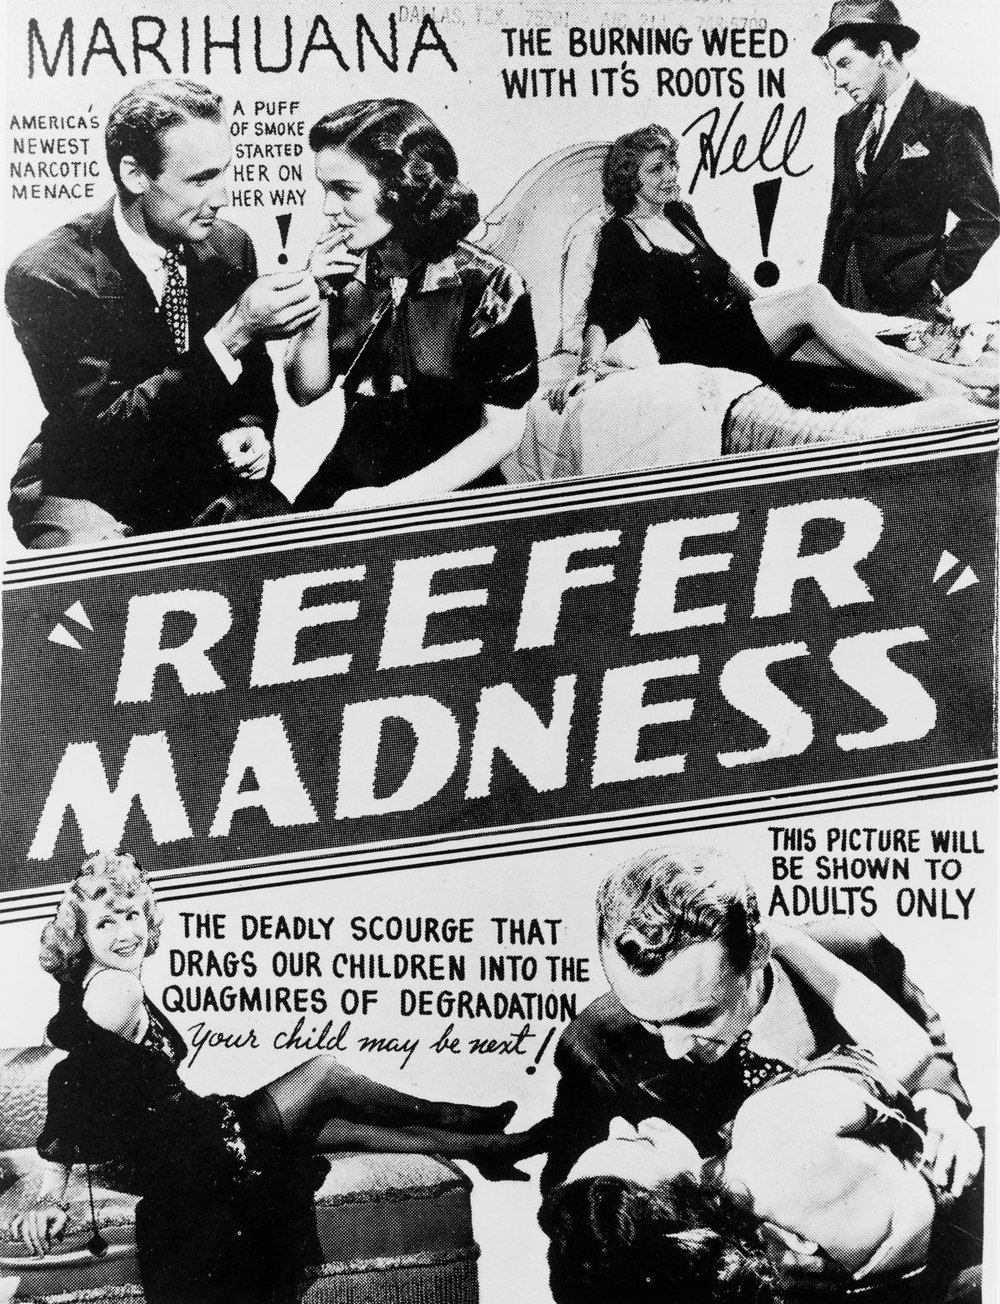 Myths about marijuana spread in propaganda films like Reefer Madness, continue to plague the CBD debate, some 50 years after these films were made.